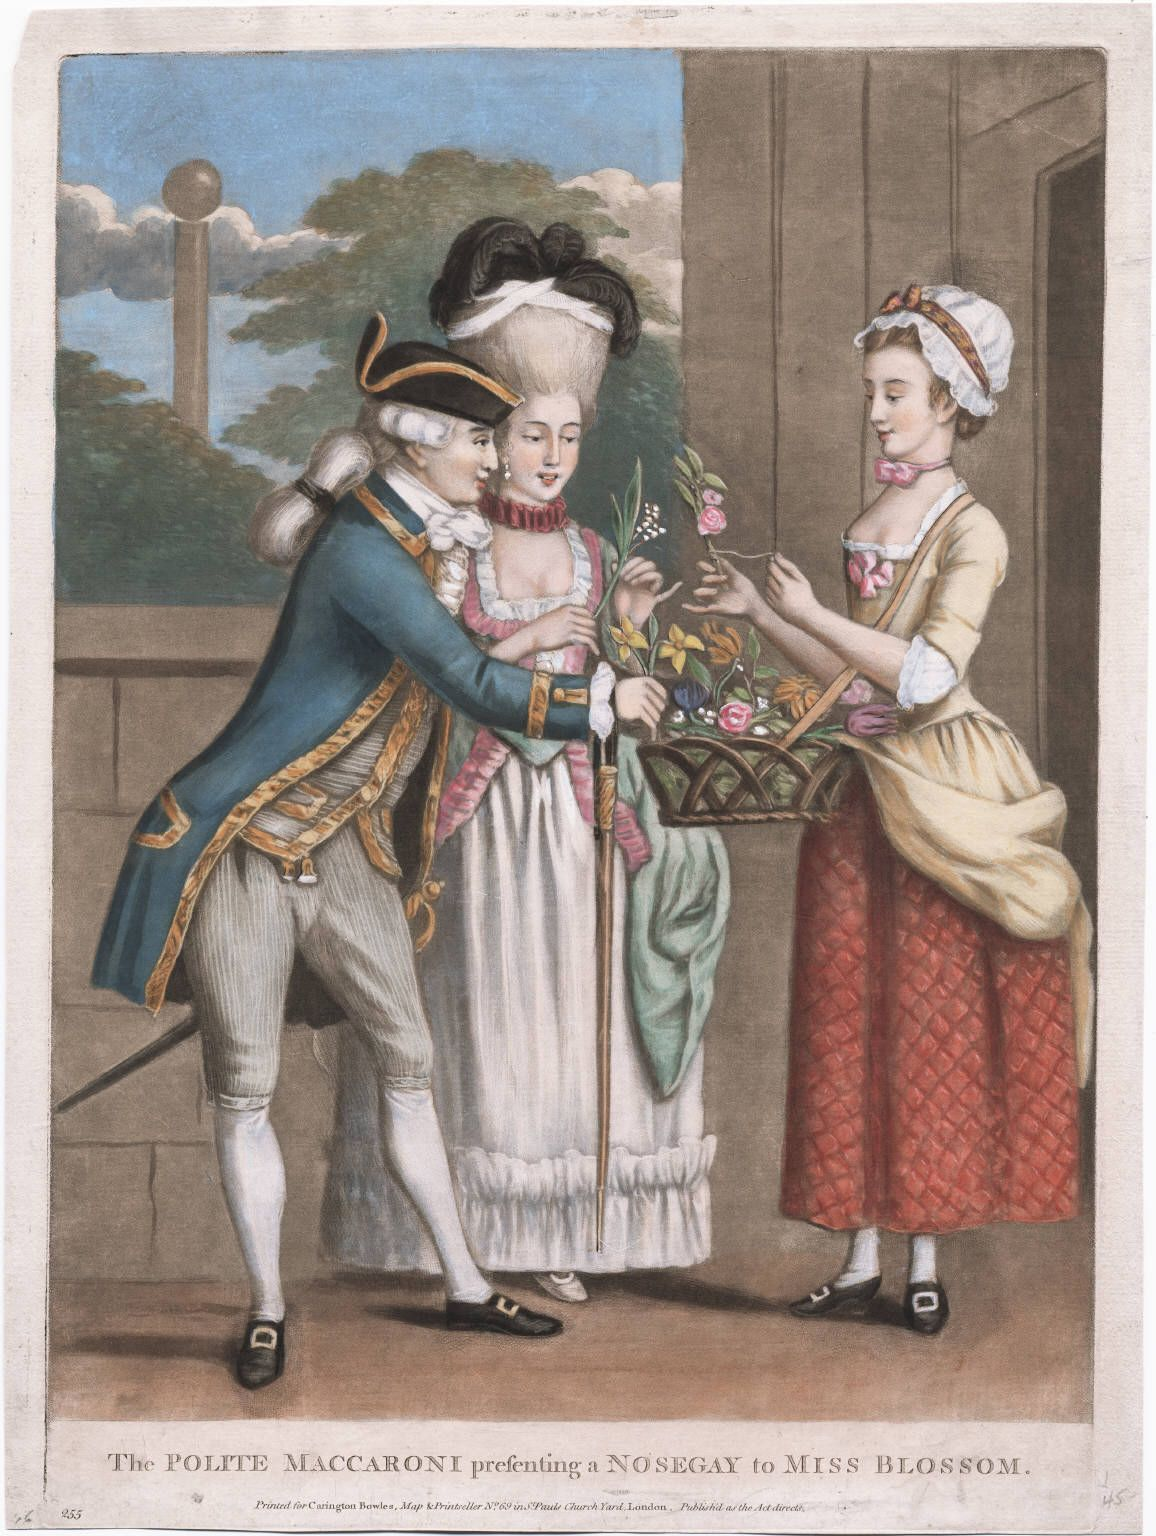 I noticed in looking for period images that there seemed to be a running theme after 1771 of macaronis and love (be it courtesans or an old ...